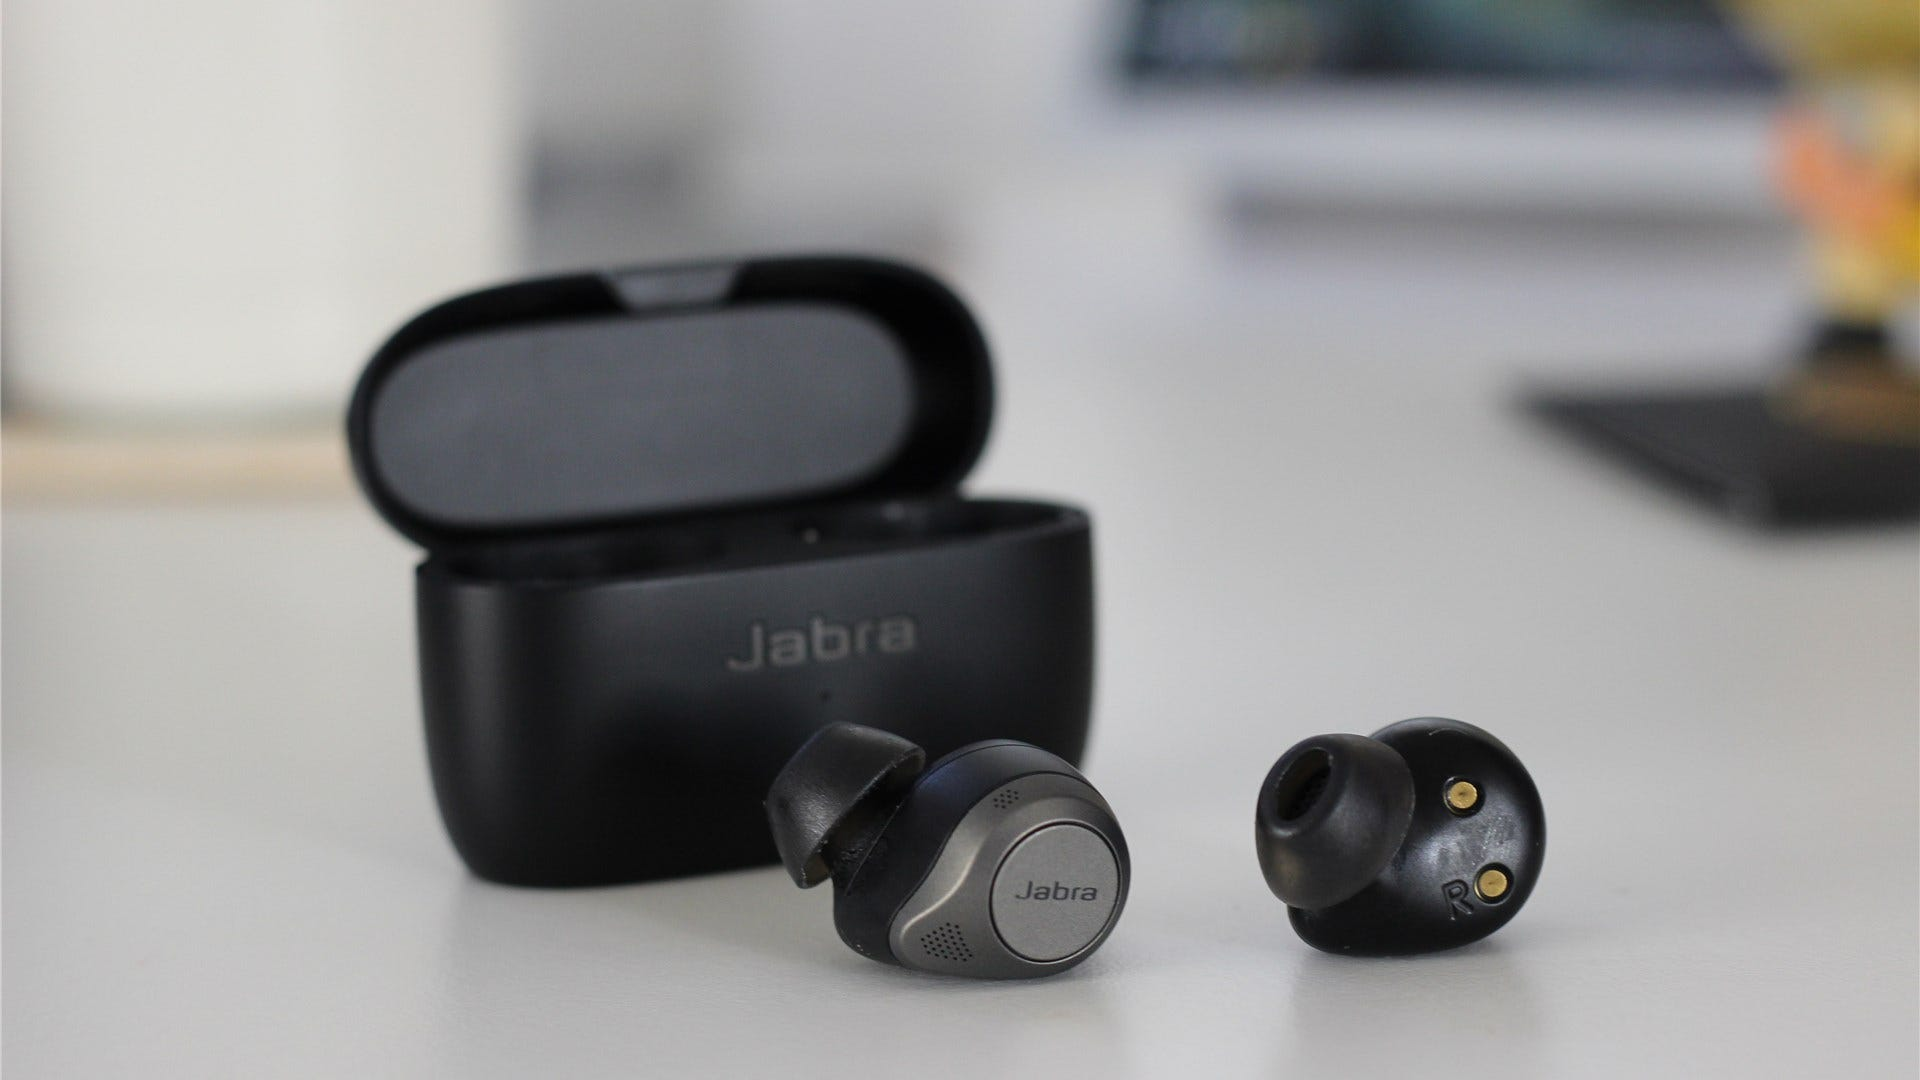 The Elite 85t earbuds out of the case, showing the buttons and the ear tip